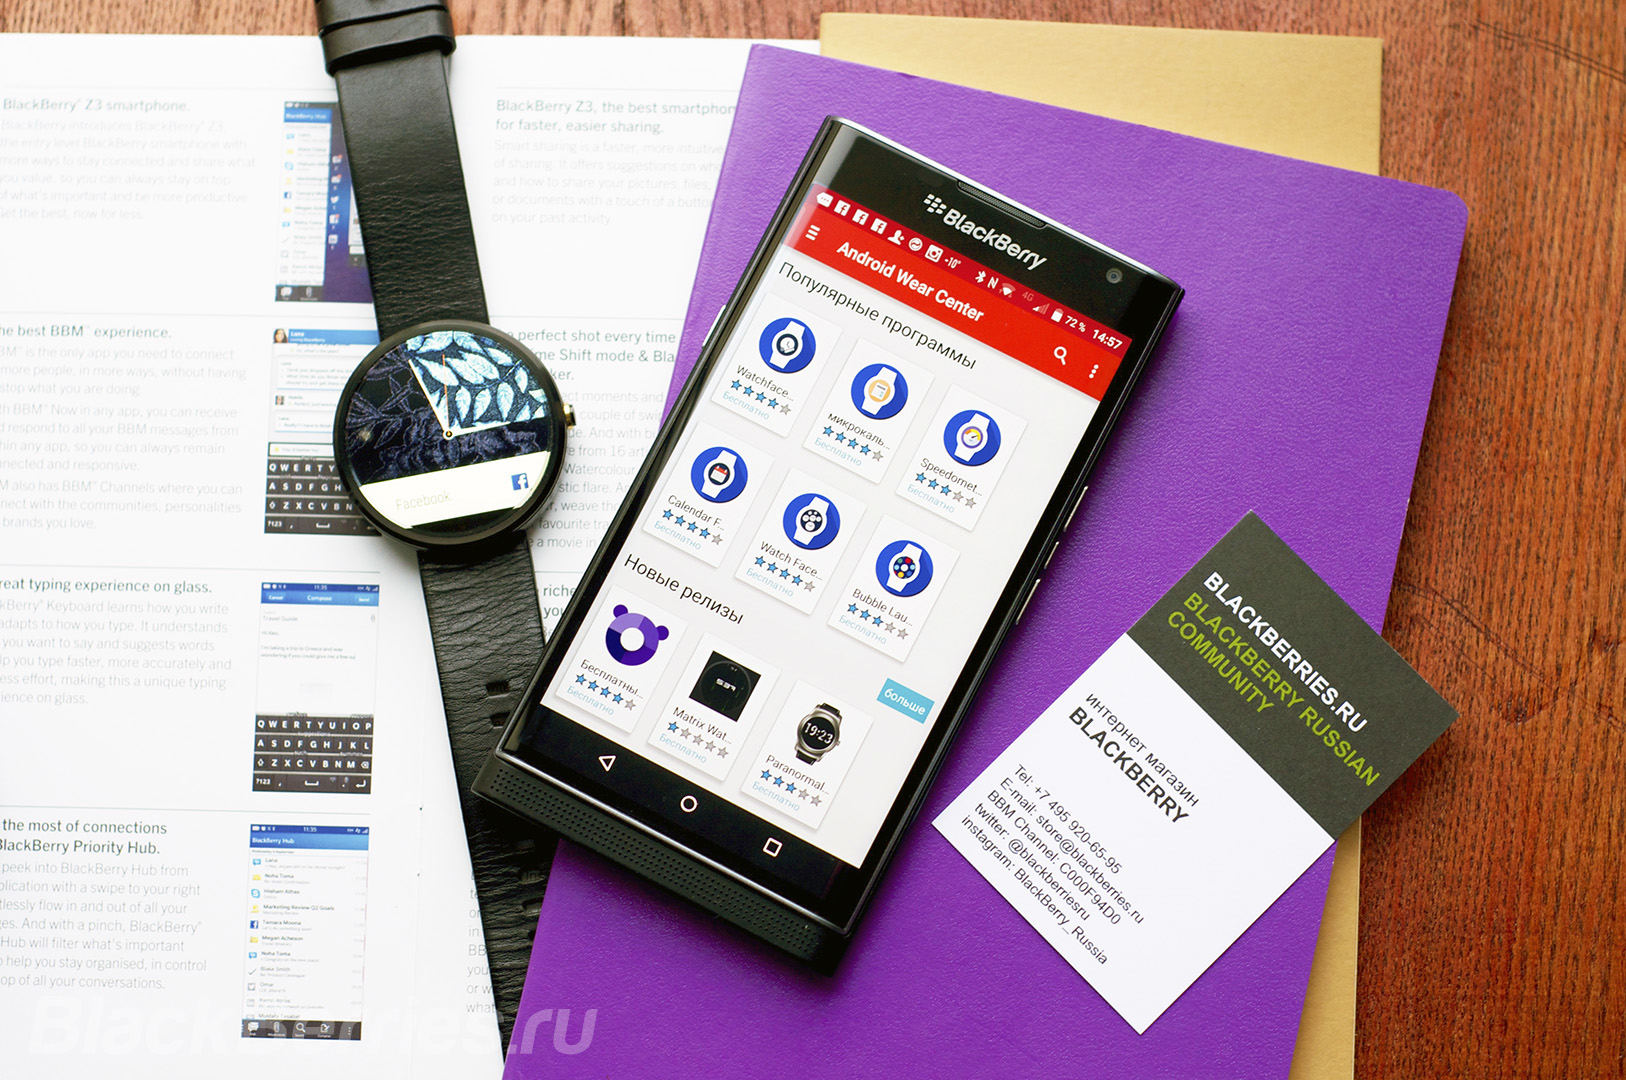 BlackBerry-Priv-Android-Wear-02